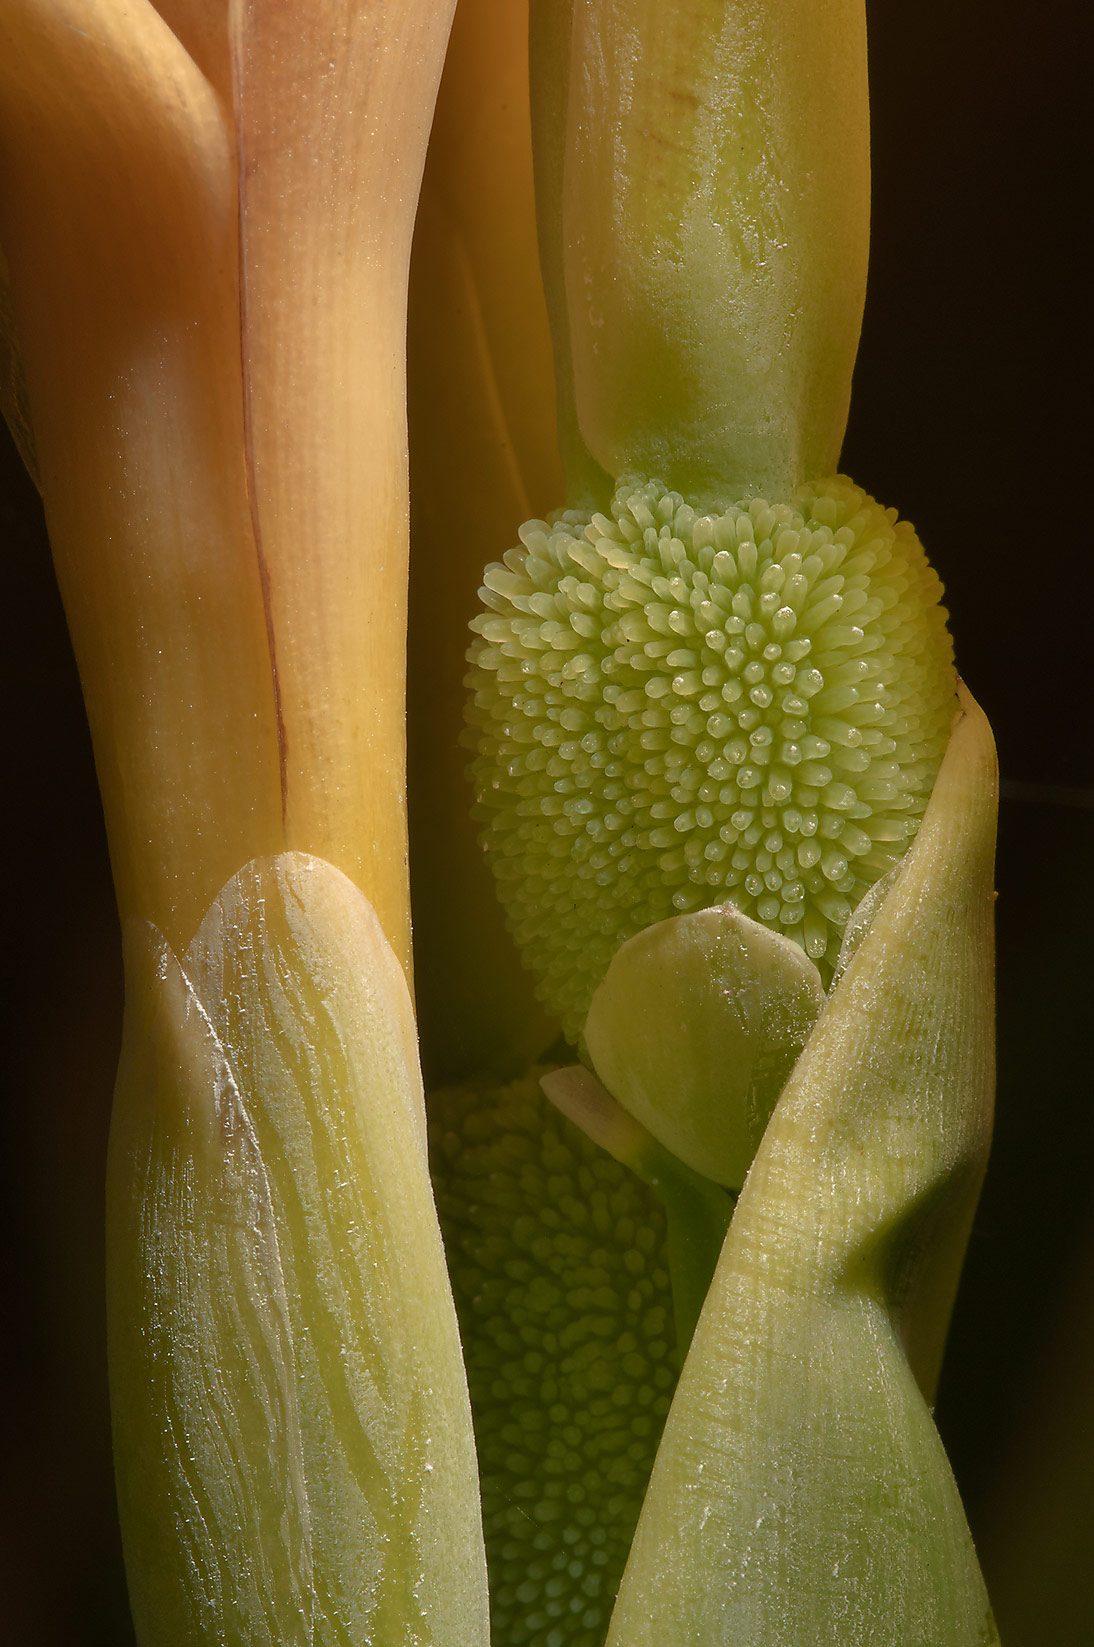 Ovary of calla in TAMU Holistic Garden in Texas A&M University. College Station, Texas